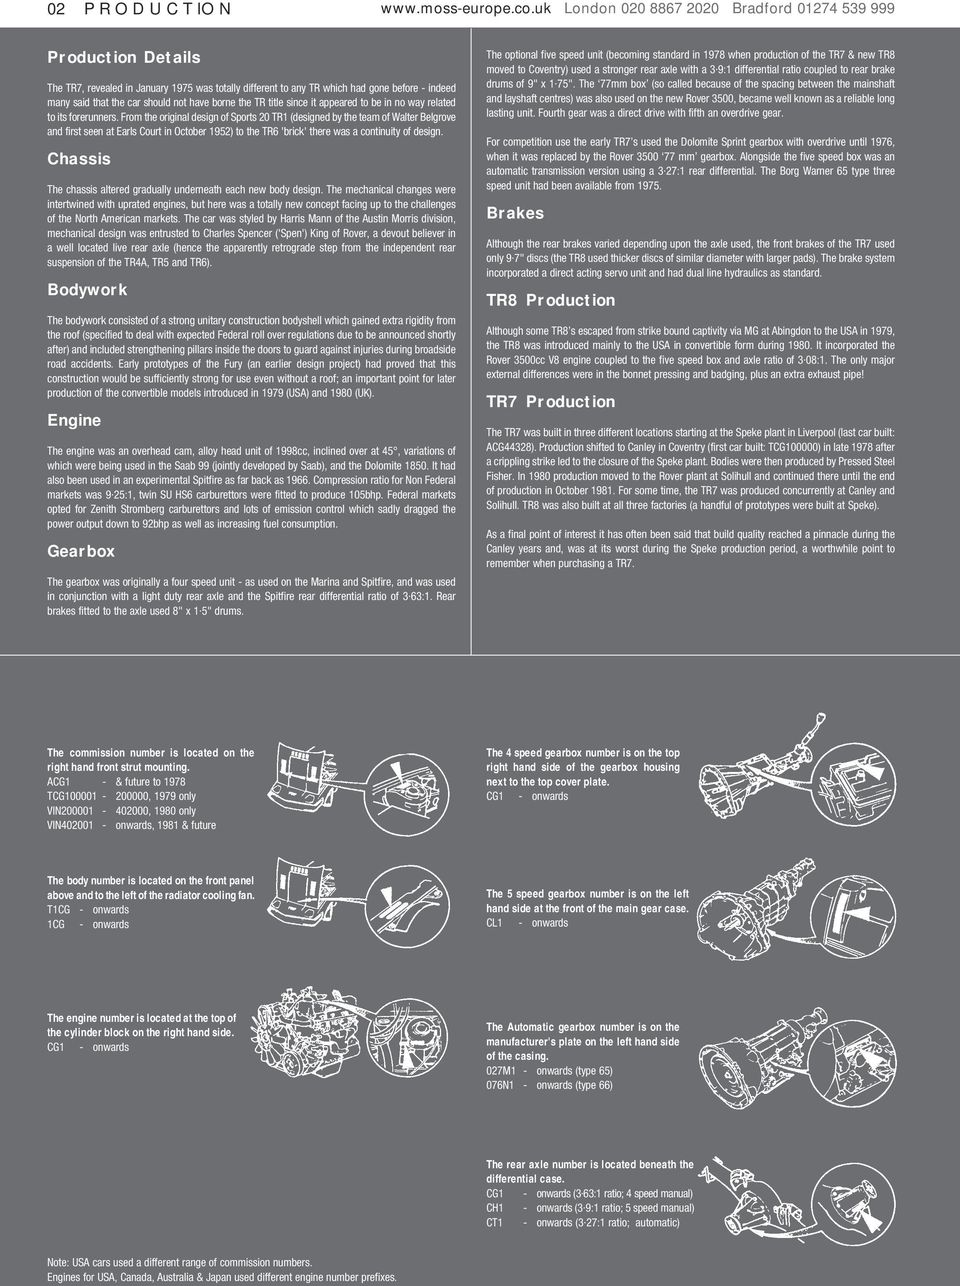 Tr Triumph Tr7 Restoration Parts Pdf Wiring Diagram For 1976 Have Borne The Title Since It Appeared To Be In No Way Related Its